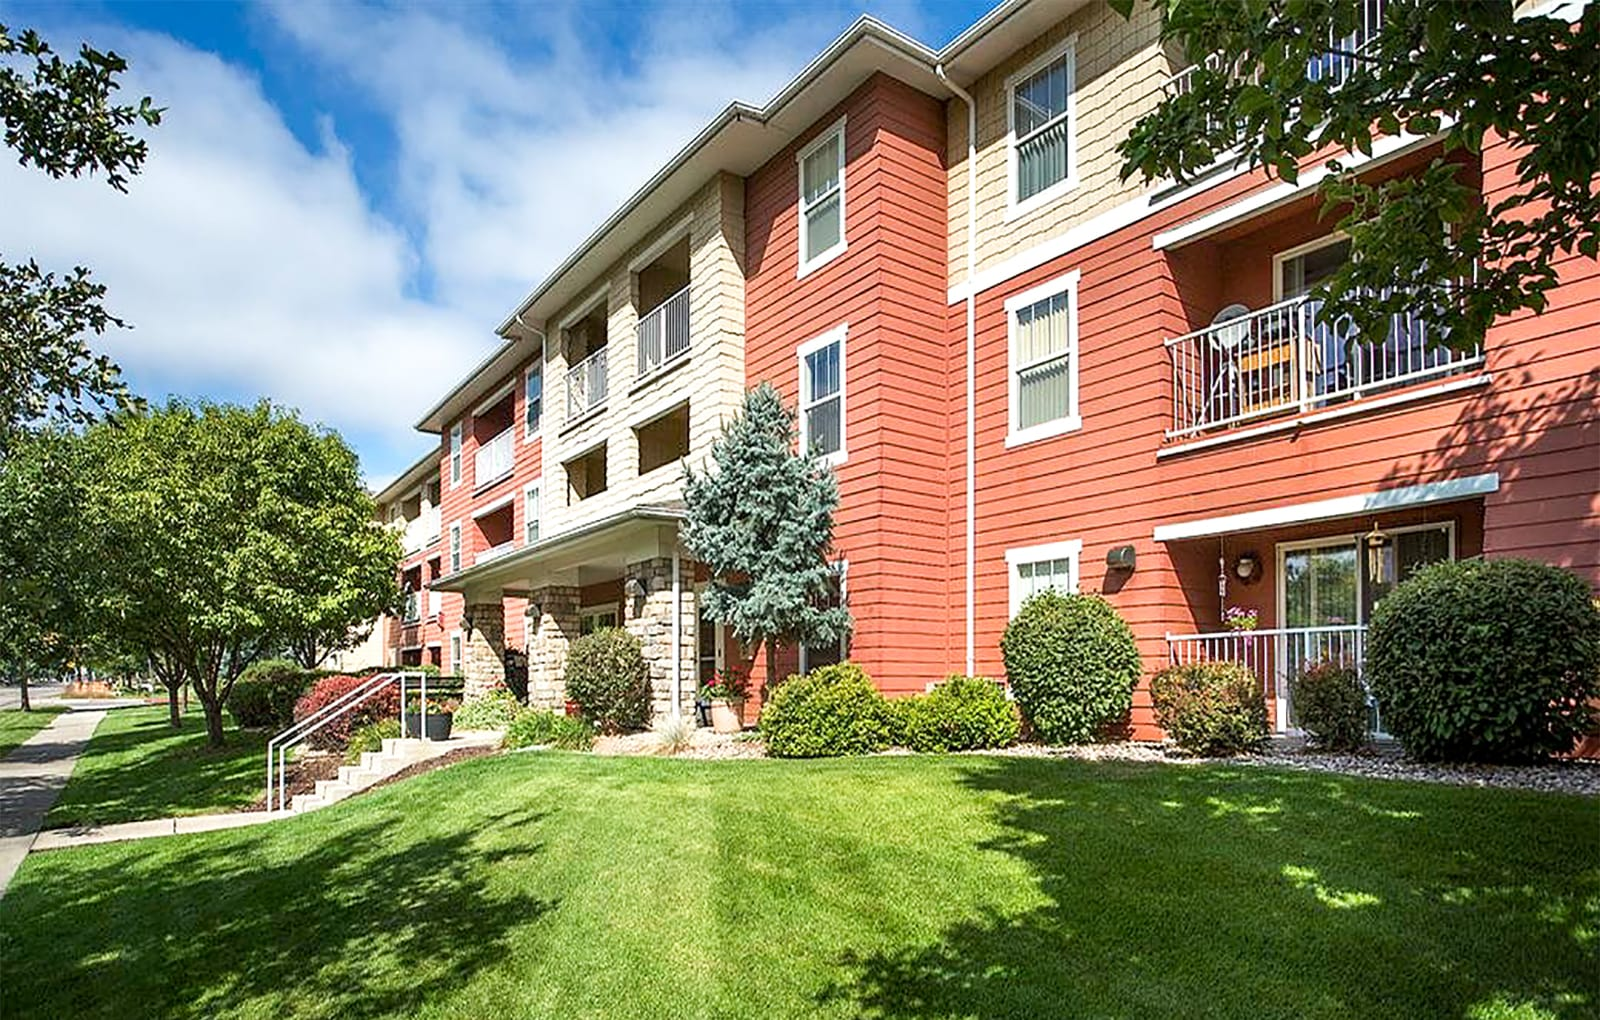 Apartment building exterior and landscaping,Apartment building exterior and landscaping,